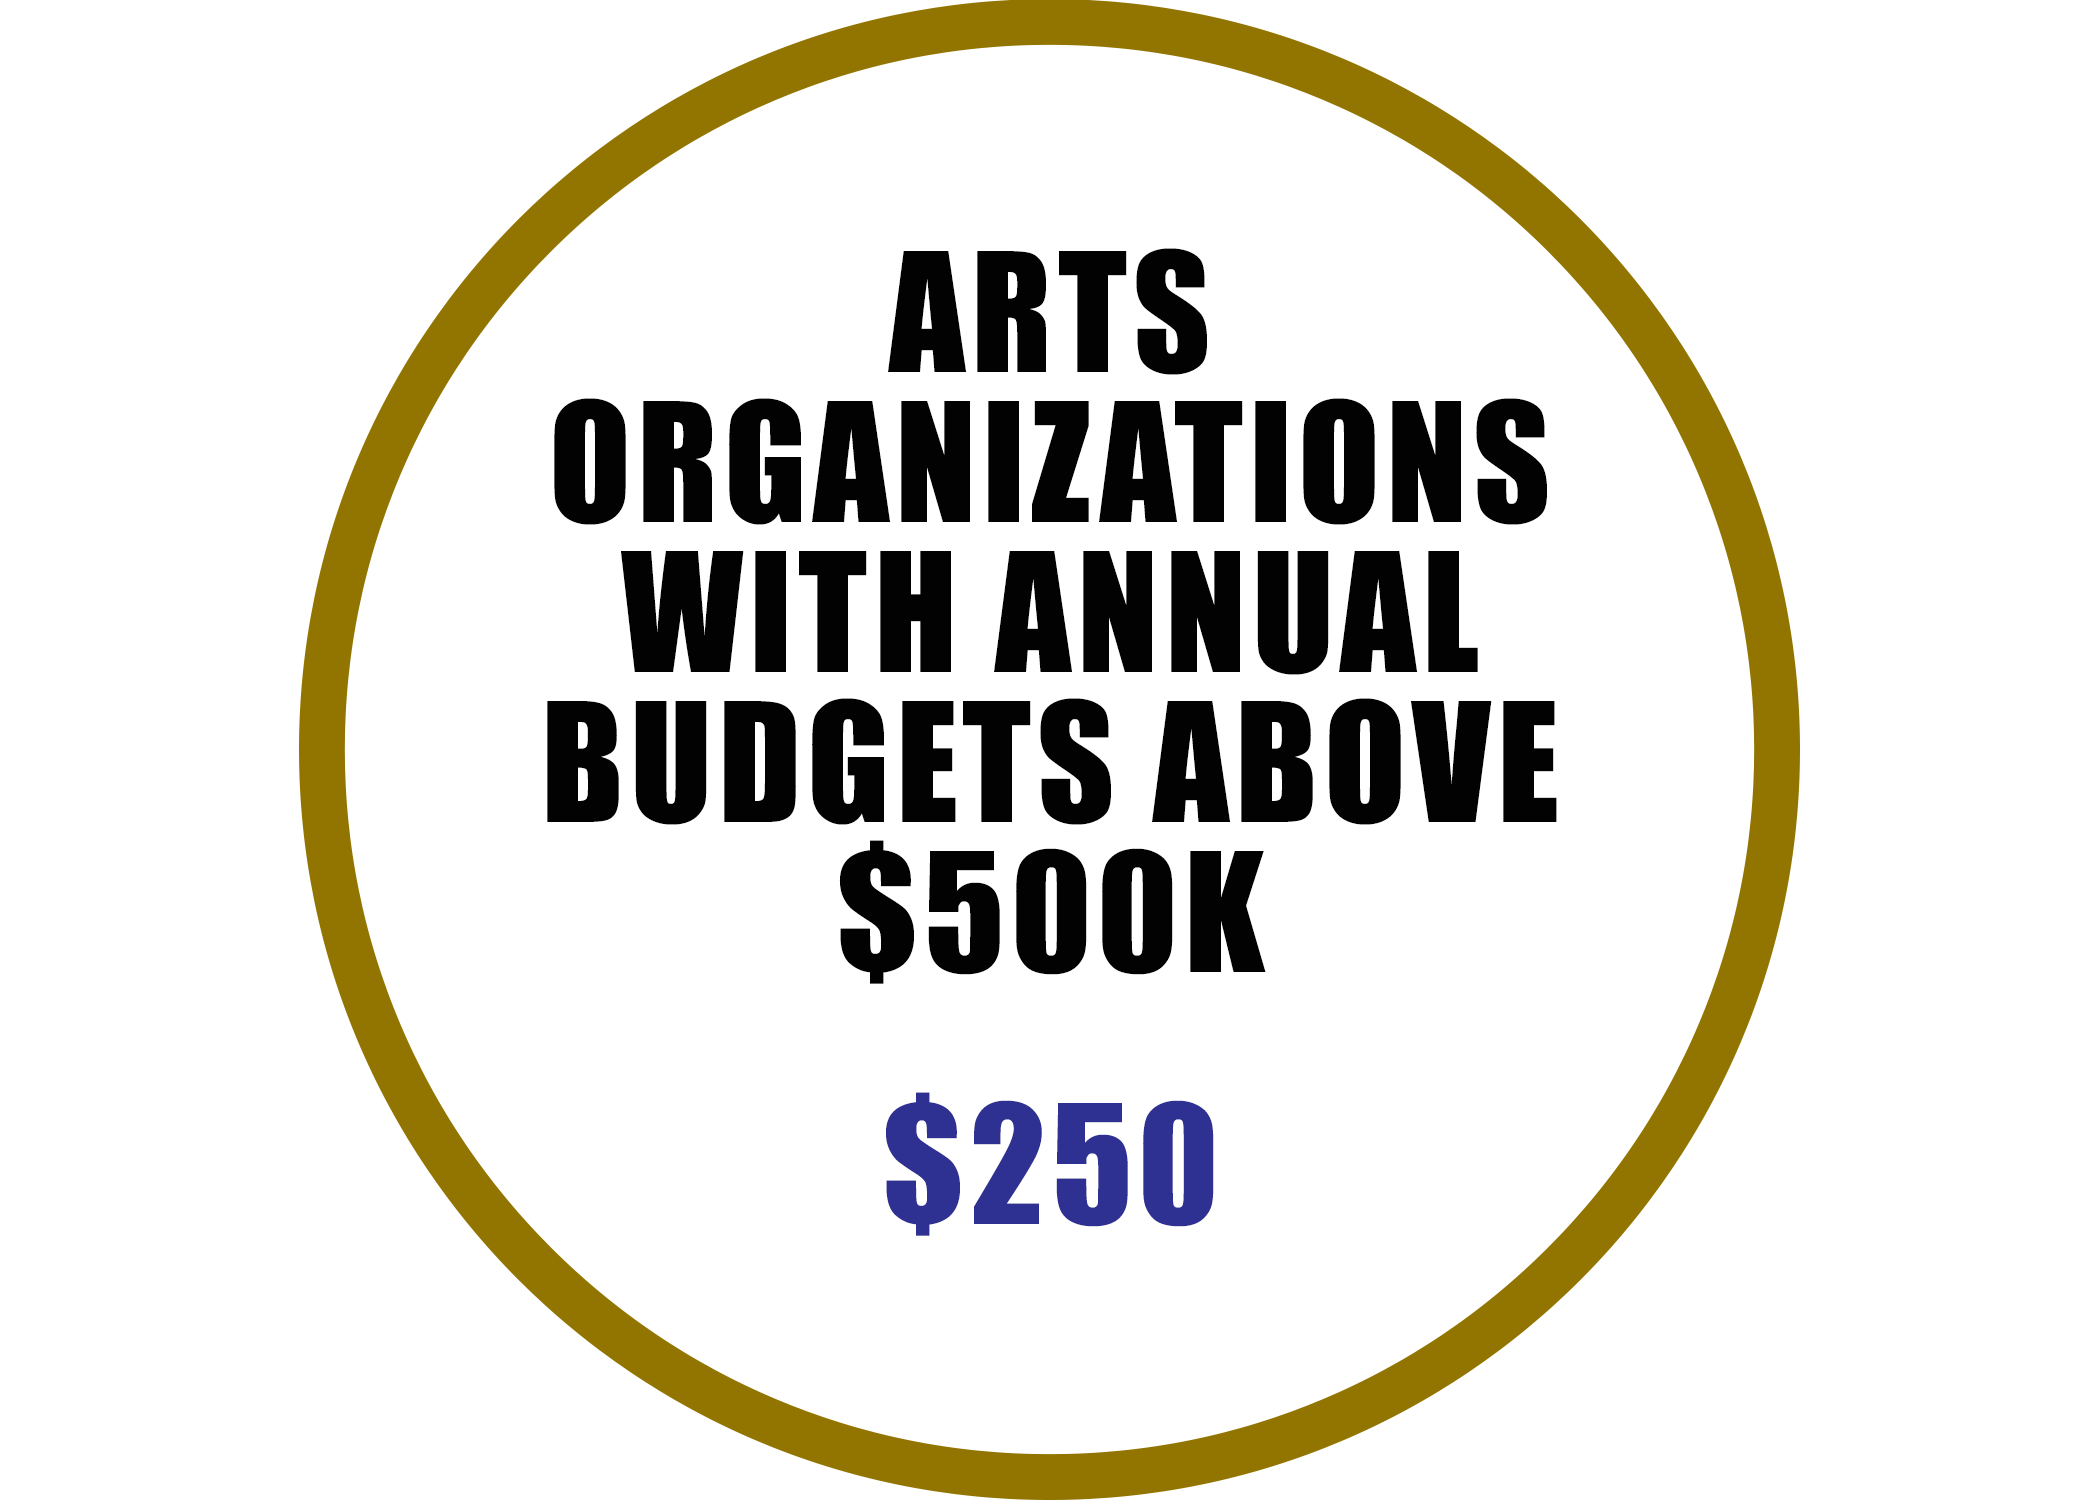 Artist Organizations with budgets above $500K Membership benefits include:  -Event Rental Discount -Complimentary Booth at Baton Rouge Arts Market -Voting rights at Annual Meeting -4 Arts Council e-blast promotions per year -Discounted professional development seminars -Listed on Arts Council website with link to member's website -Invitation to Networking Events hosted by Arts Council -Complimentary admission to Arts Summit -Events included on Community Arts Calendar & Newsletter Spotlight